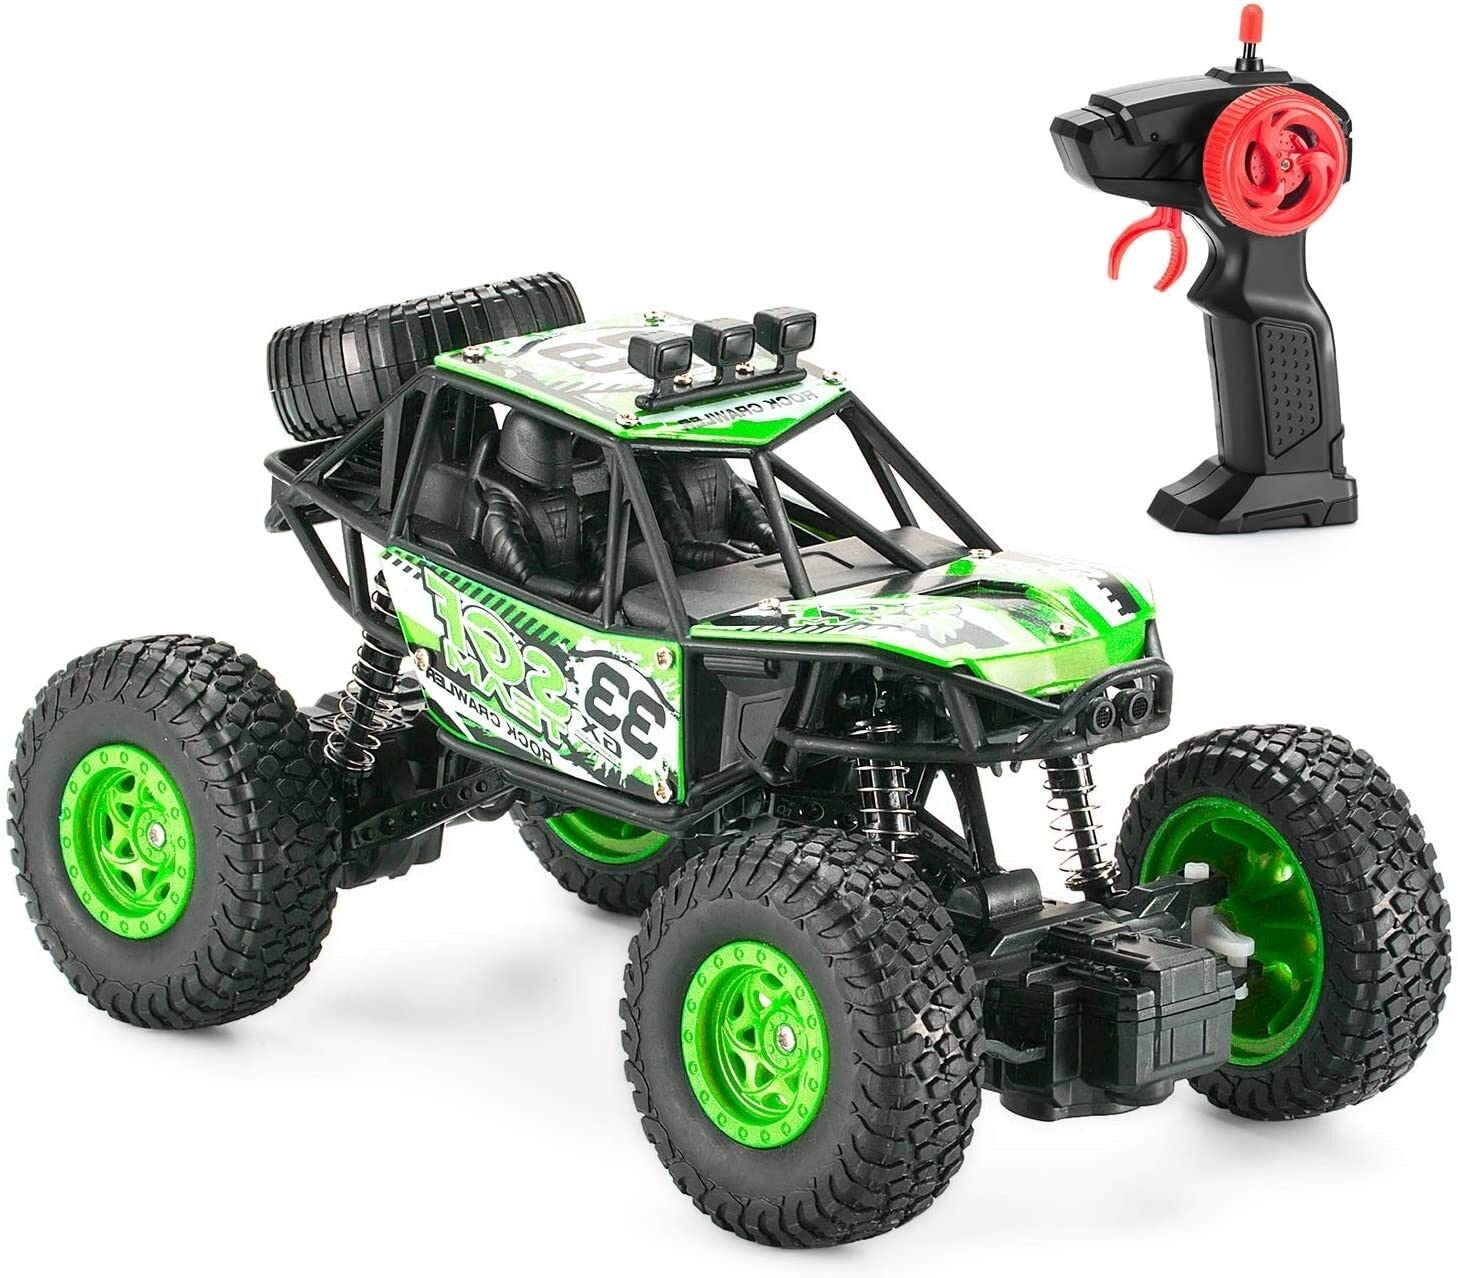 Poooc 1:20 RC Car, 4WD Remote Control Climbing Buggy 2.4GHz Rechargeable Waterproof Monster Truck All-Terrain RC Off-Road Vehicle - for 5~13 Year Old Children Best Birthday Gift